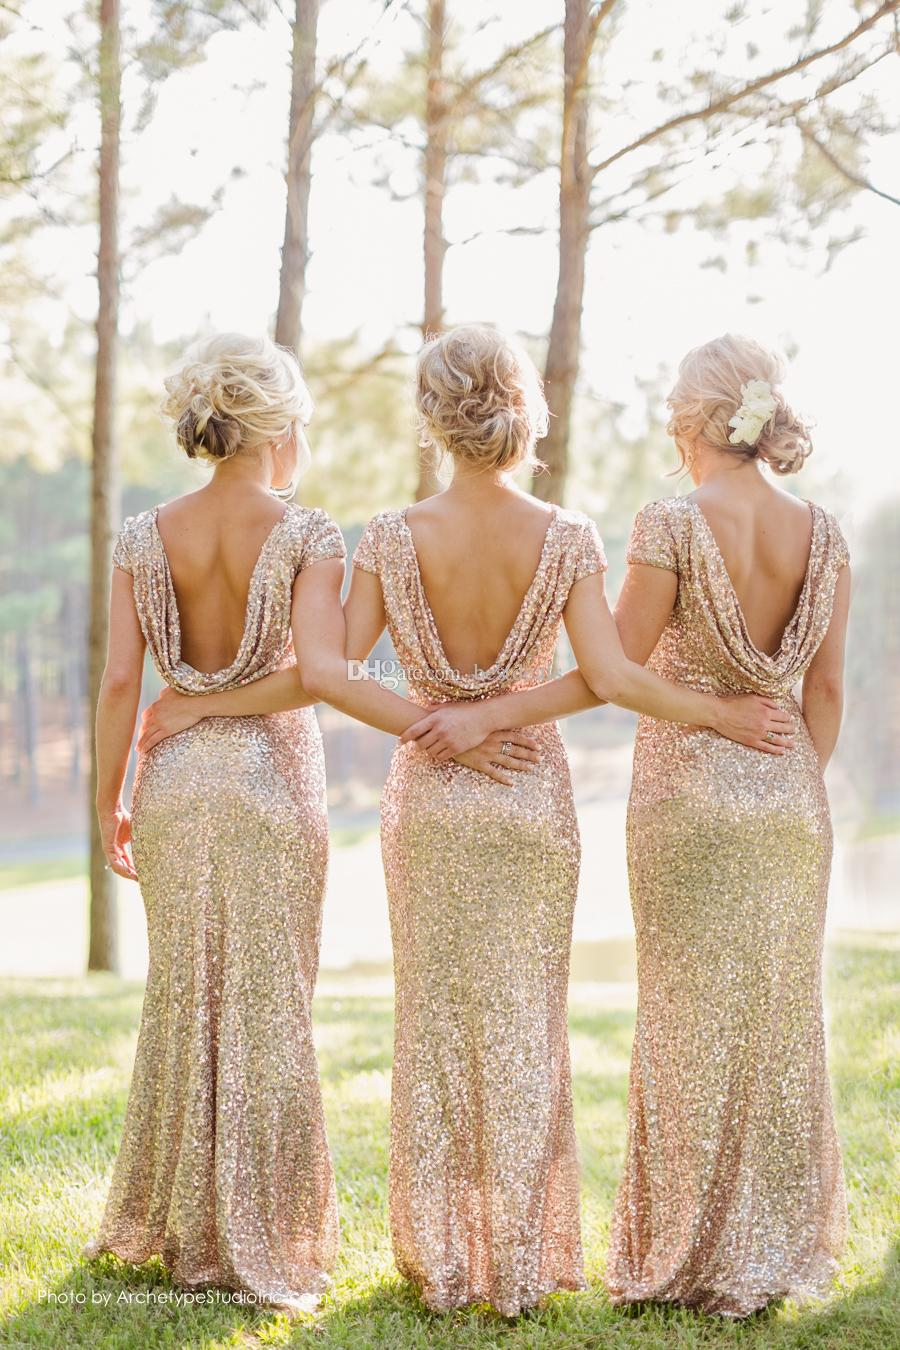 Sparkly Rose Gold Cheap 2015 Mermaid Bridesmaid Dresses 2016 Short Sleeve Sequins Backless Long Beach Wedding Party Gowns Gold Champagne